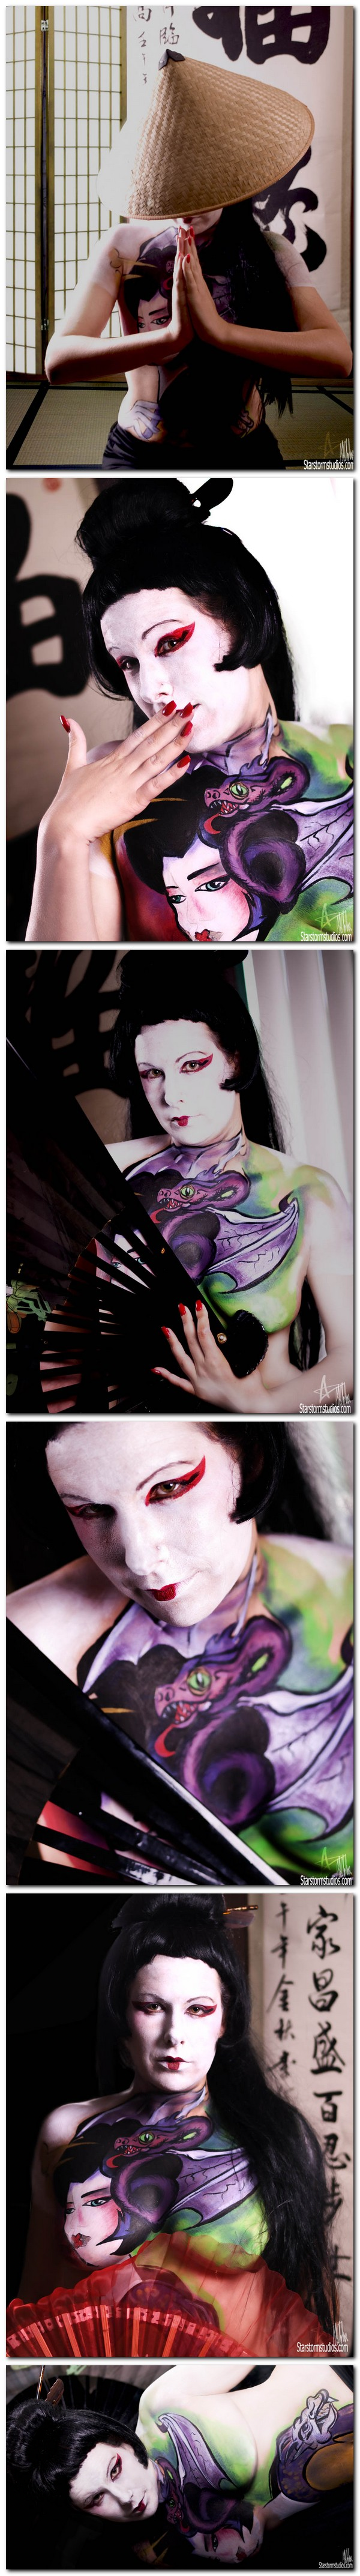 London,On Canada Aug 19, 2010 M.B .body art the photographer Anna Otok ,the model Carrie Cio Cio San theme